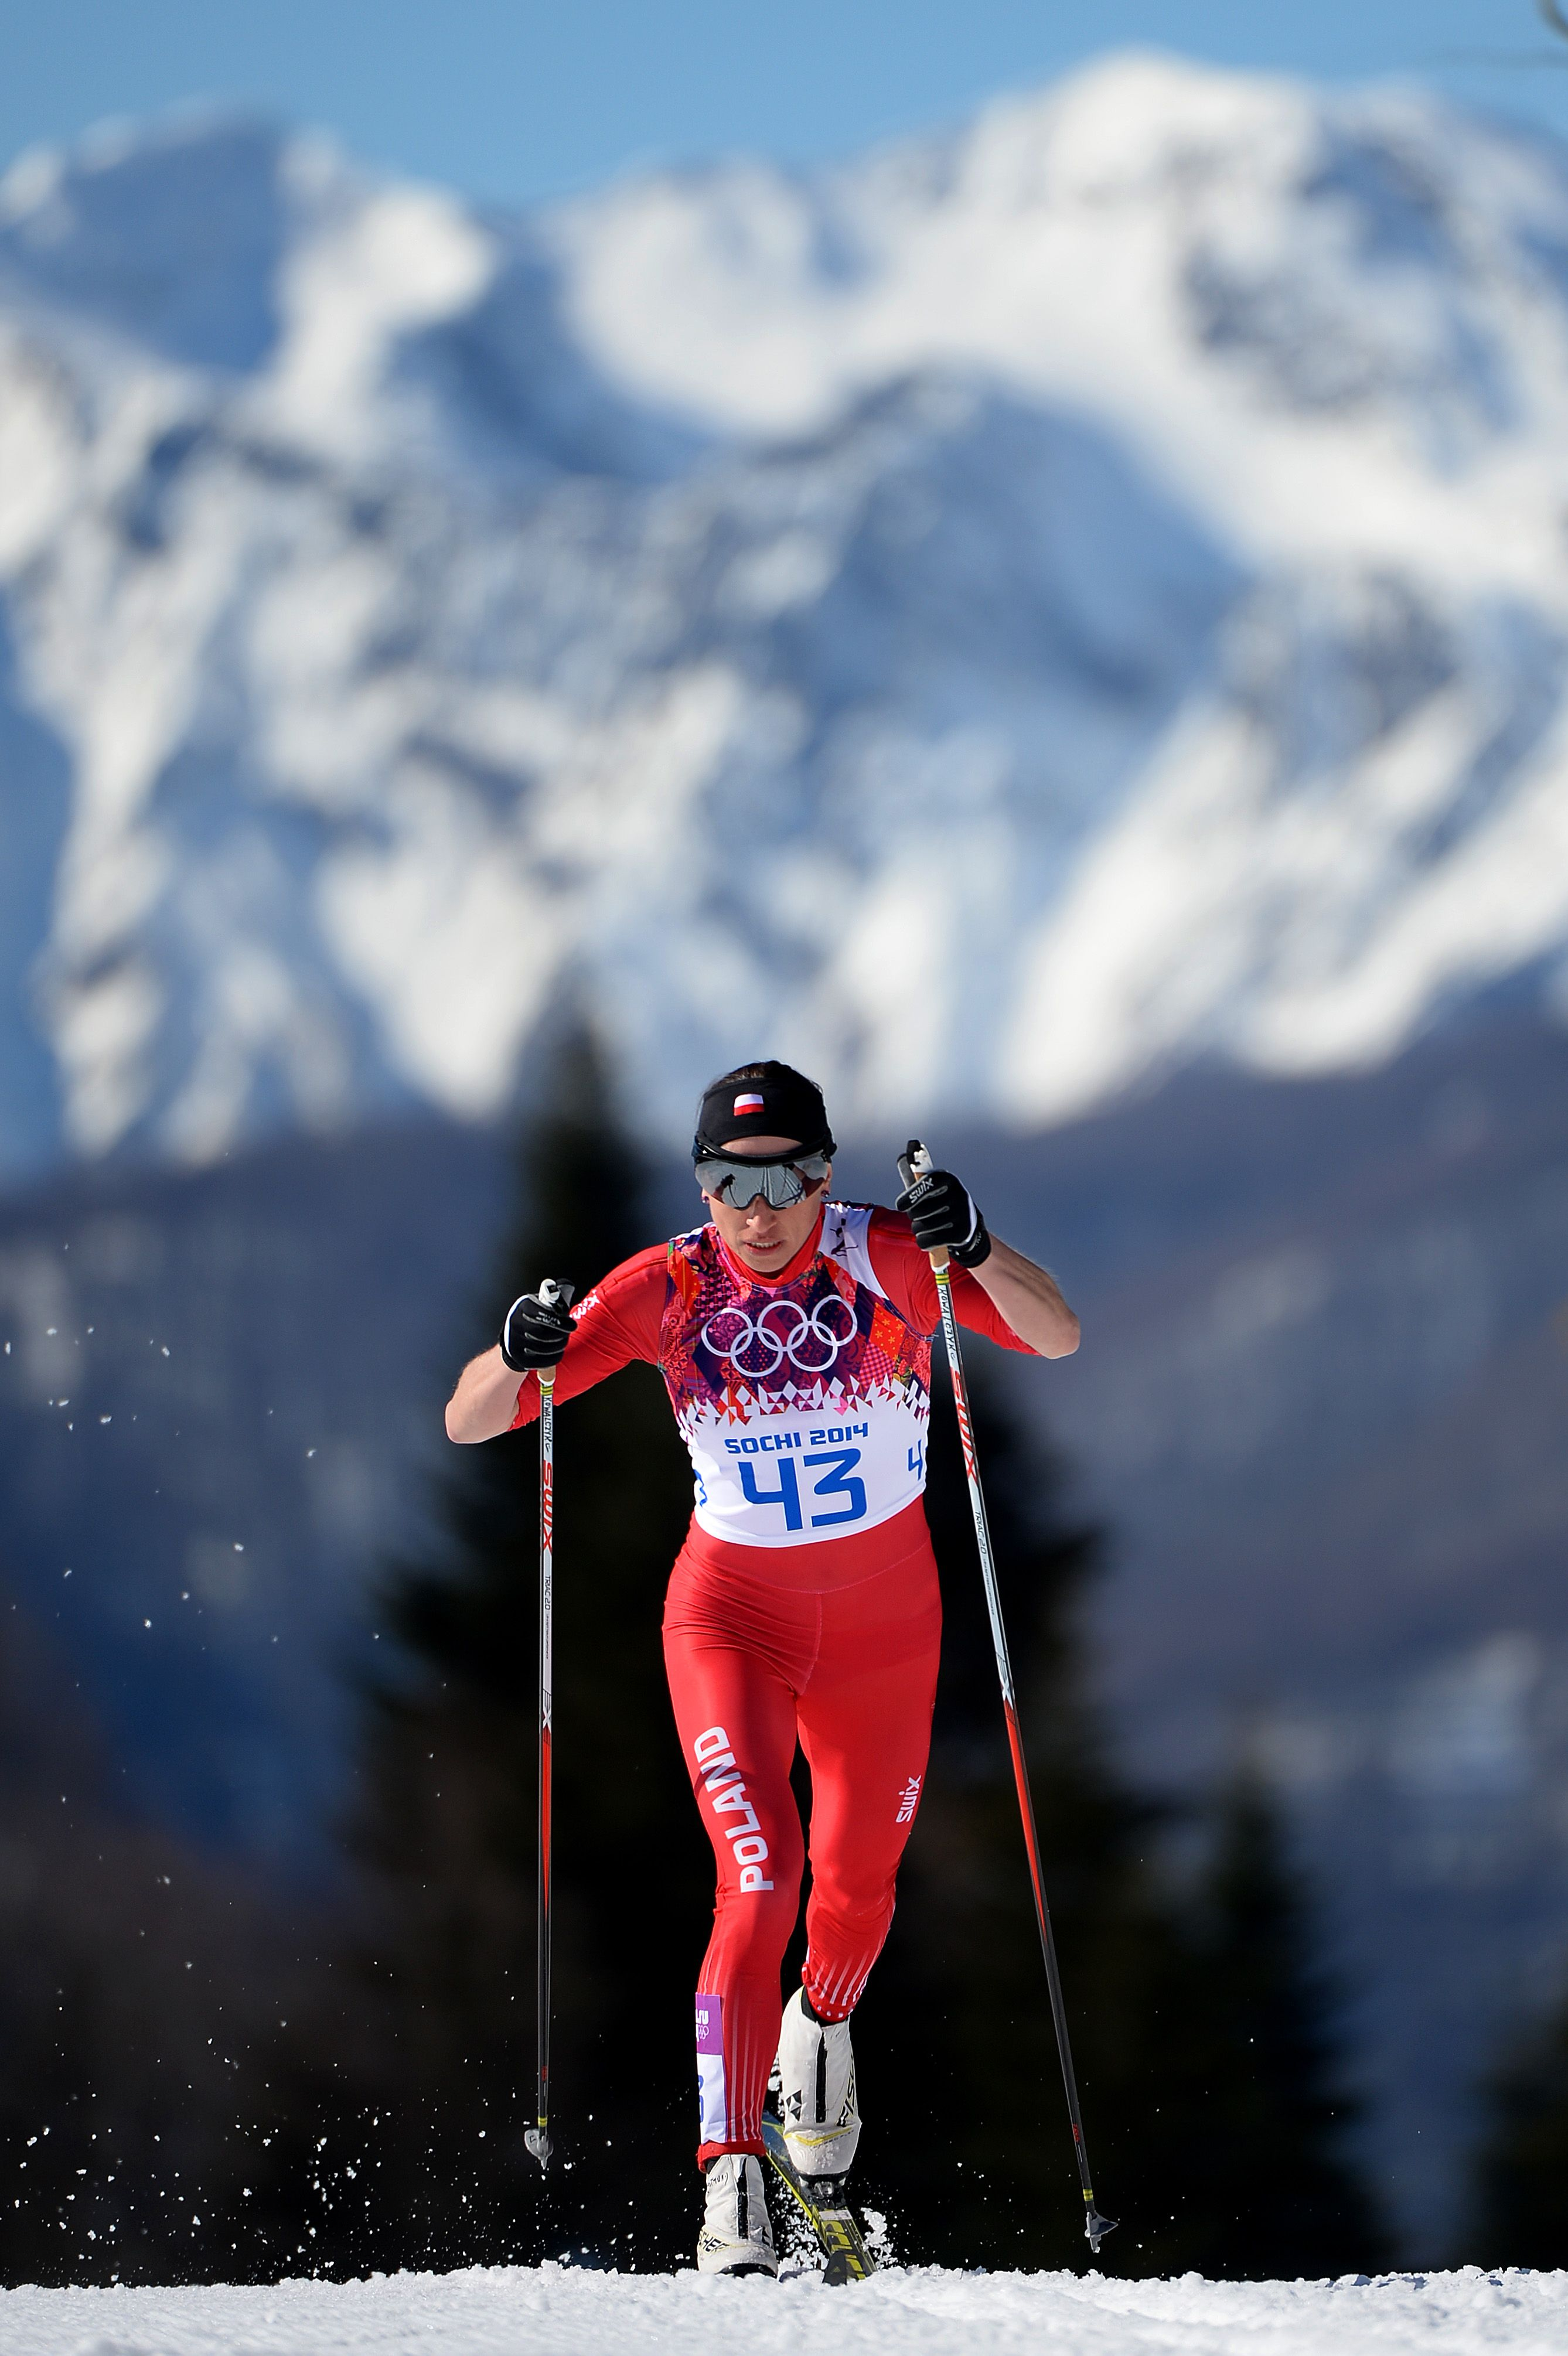 Justyna Kowalczyk Of Poland Competes In The Women S 10 Km Classic C Getty Images Cross Country Skiing Ski Women Winter Olympics 2014